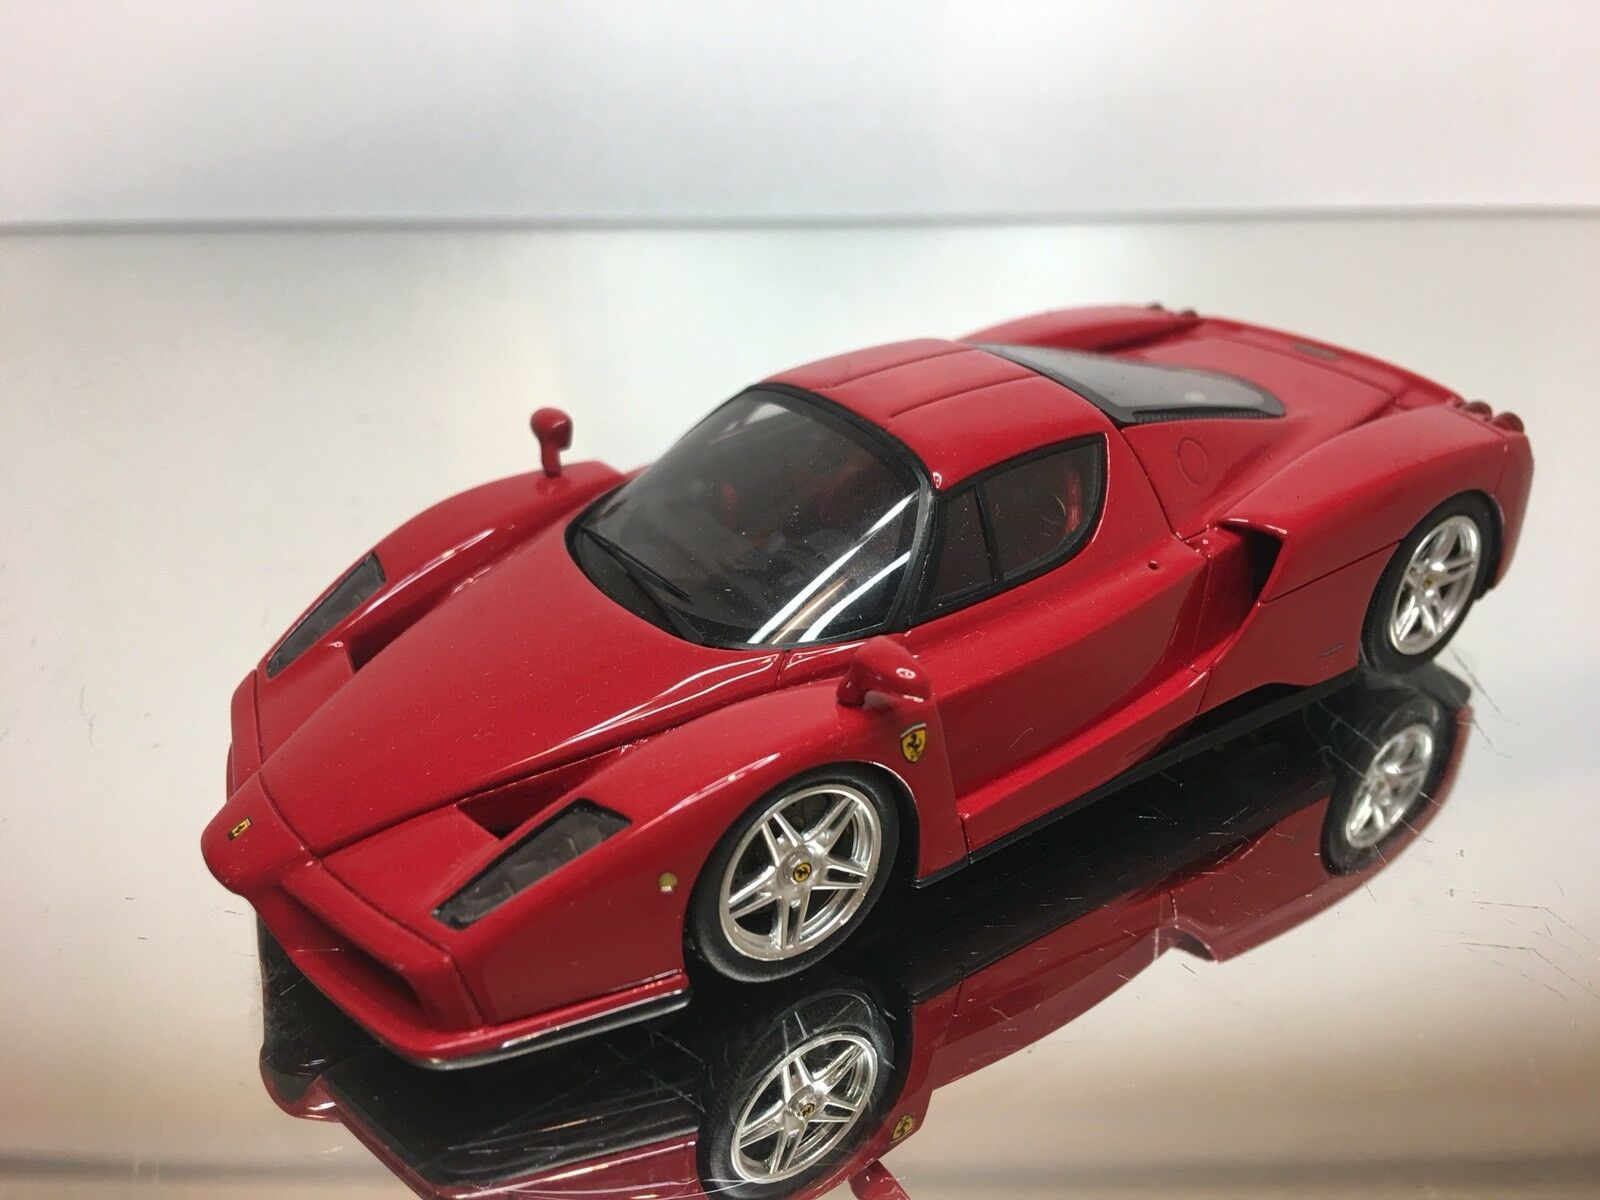 BBR    FERRARI ENZO  STREET VERSION rosso   1:43 - EXCELLENT CONDITION - 8